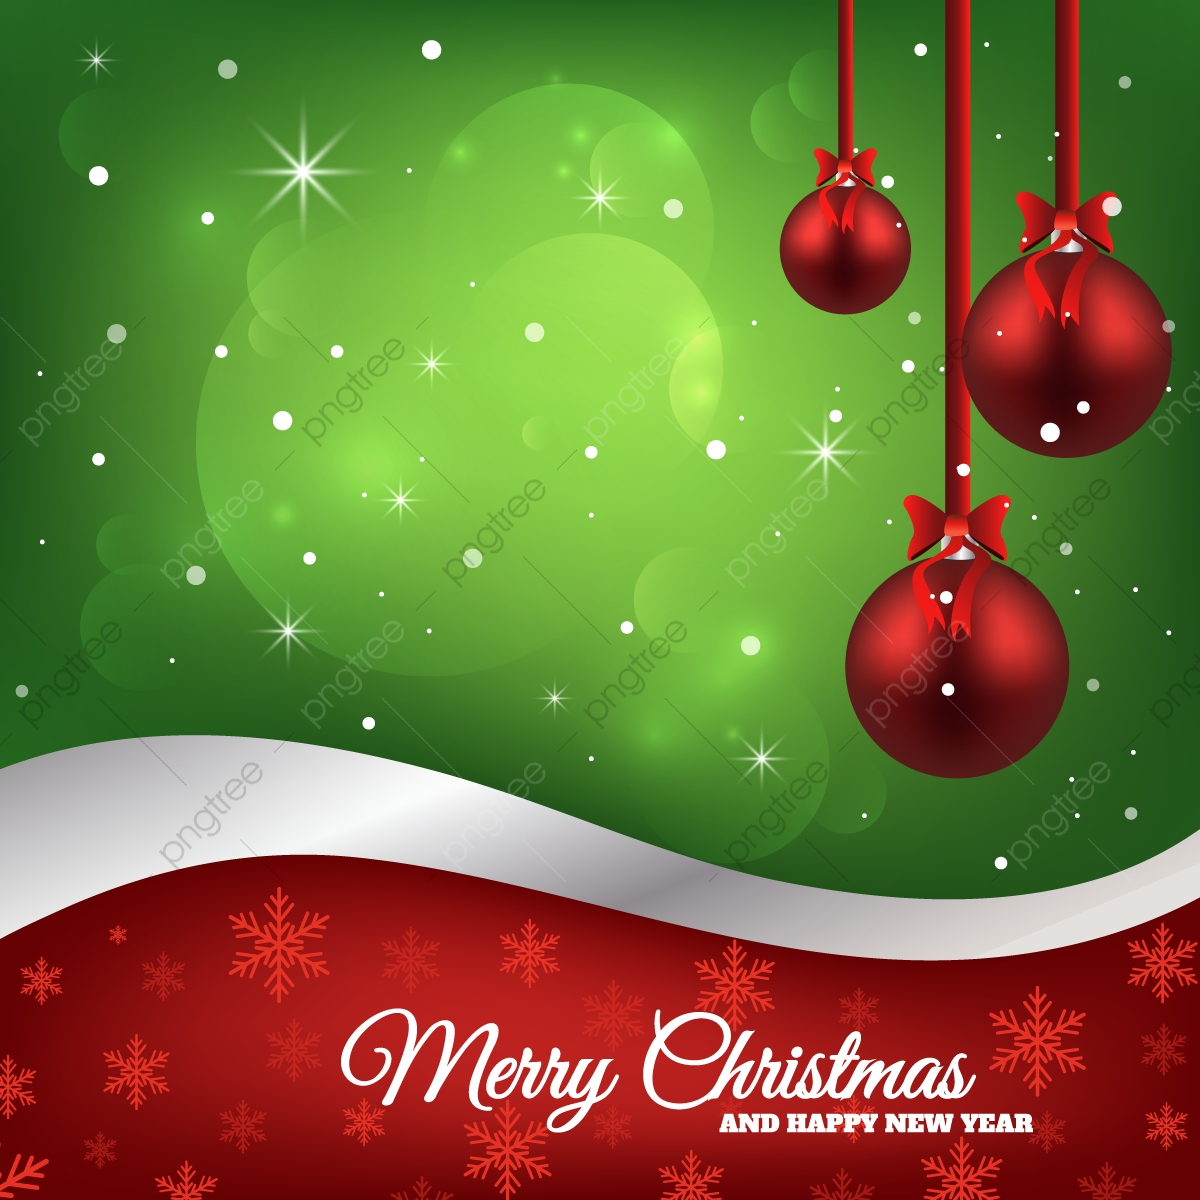 Christmas Background With Red Ribbon Balls Merry Holiday